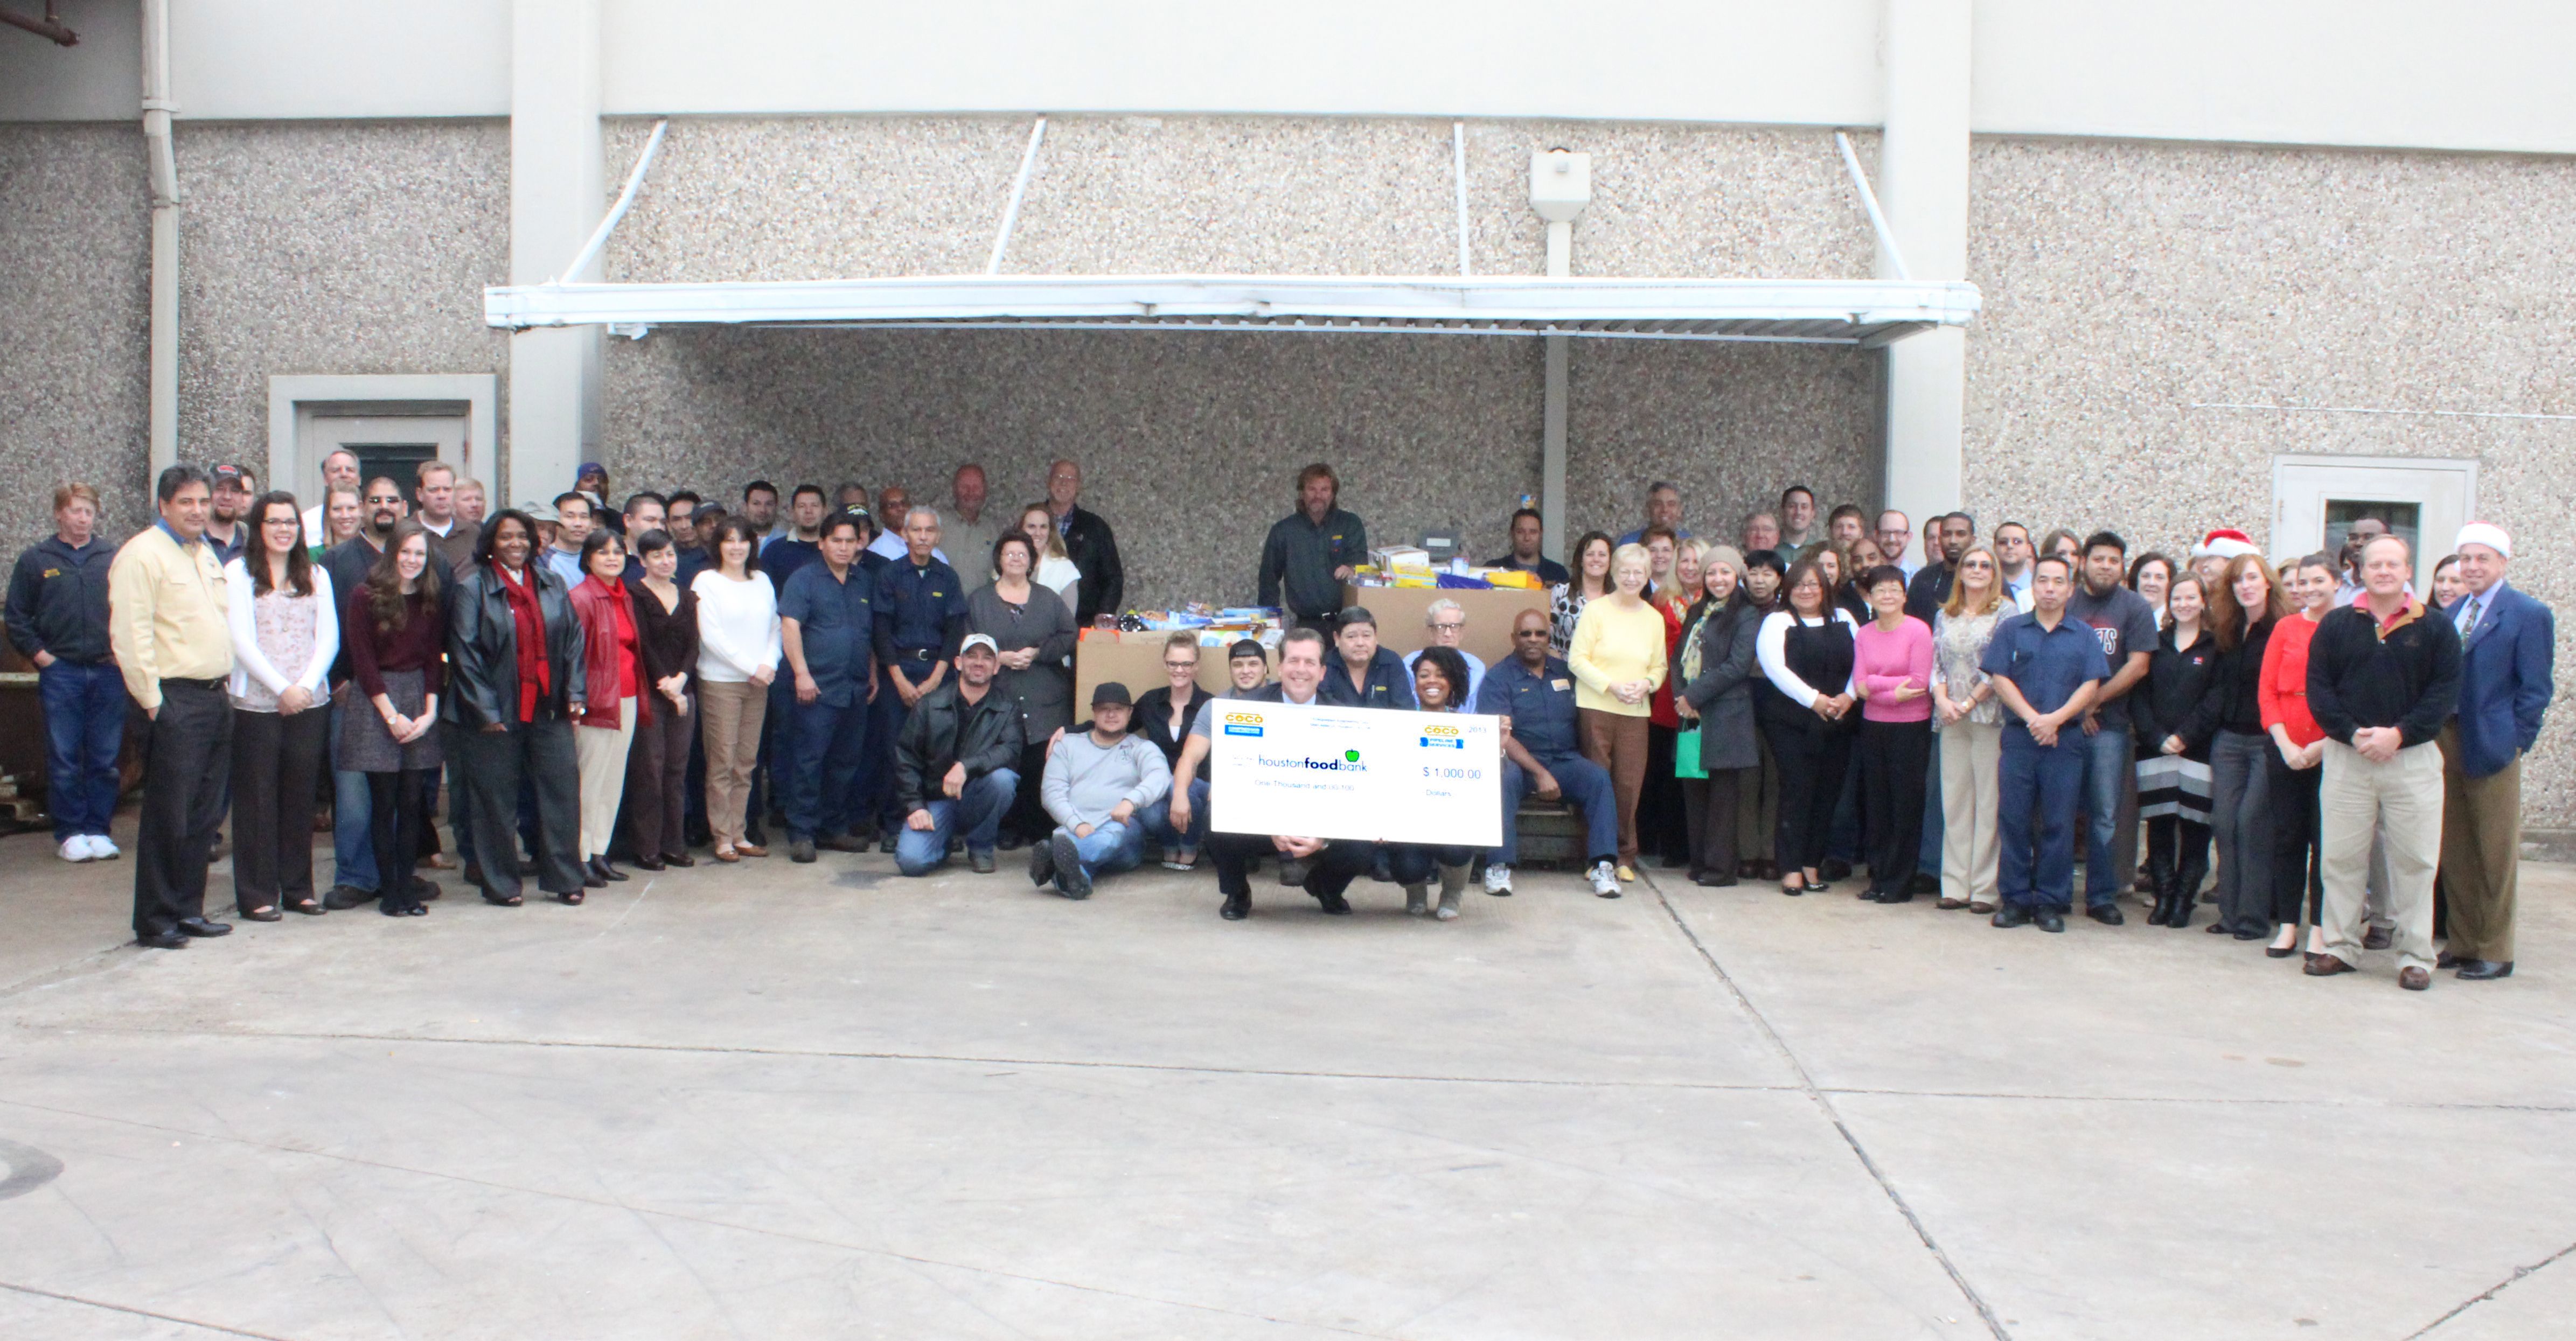 Group Photo with Check